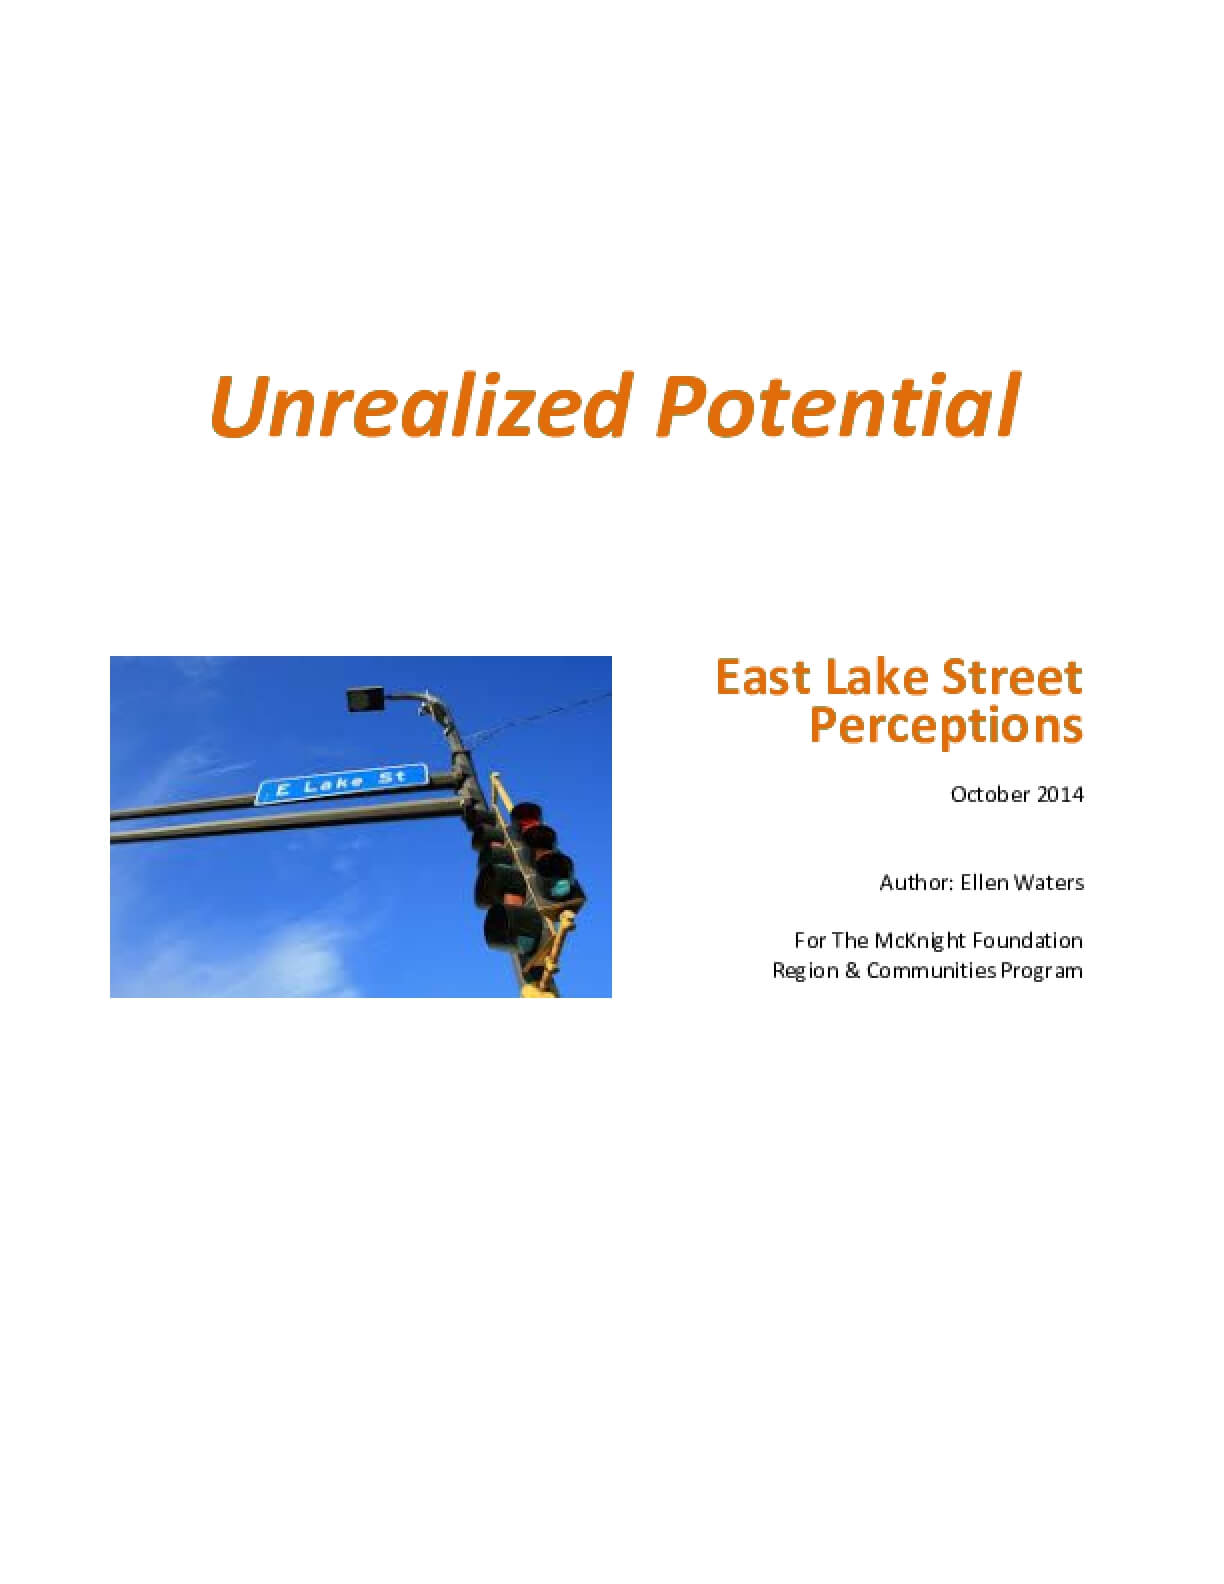 Unrealized Potential: East Lake Street Perceptions